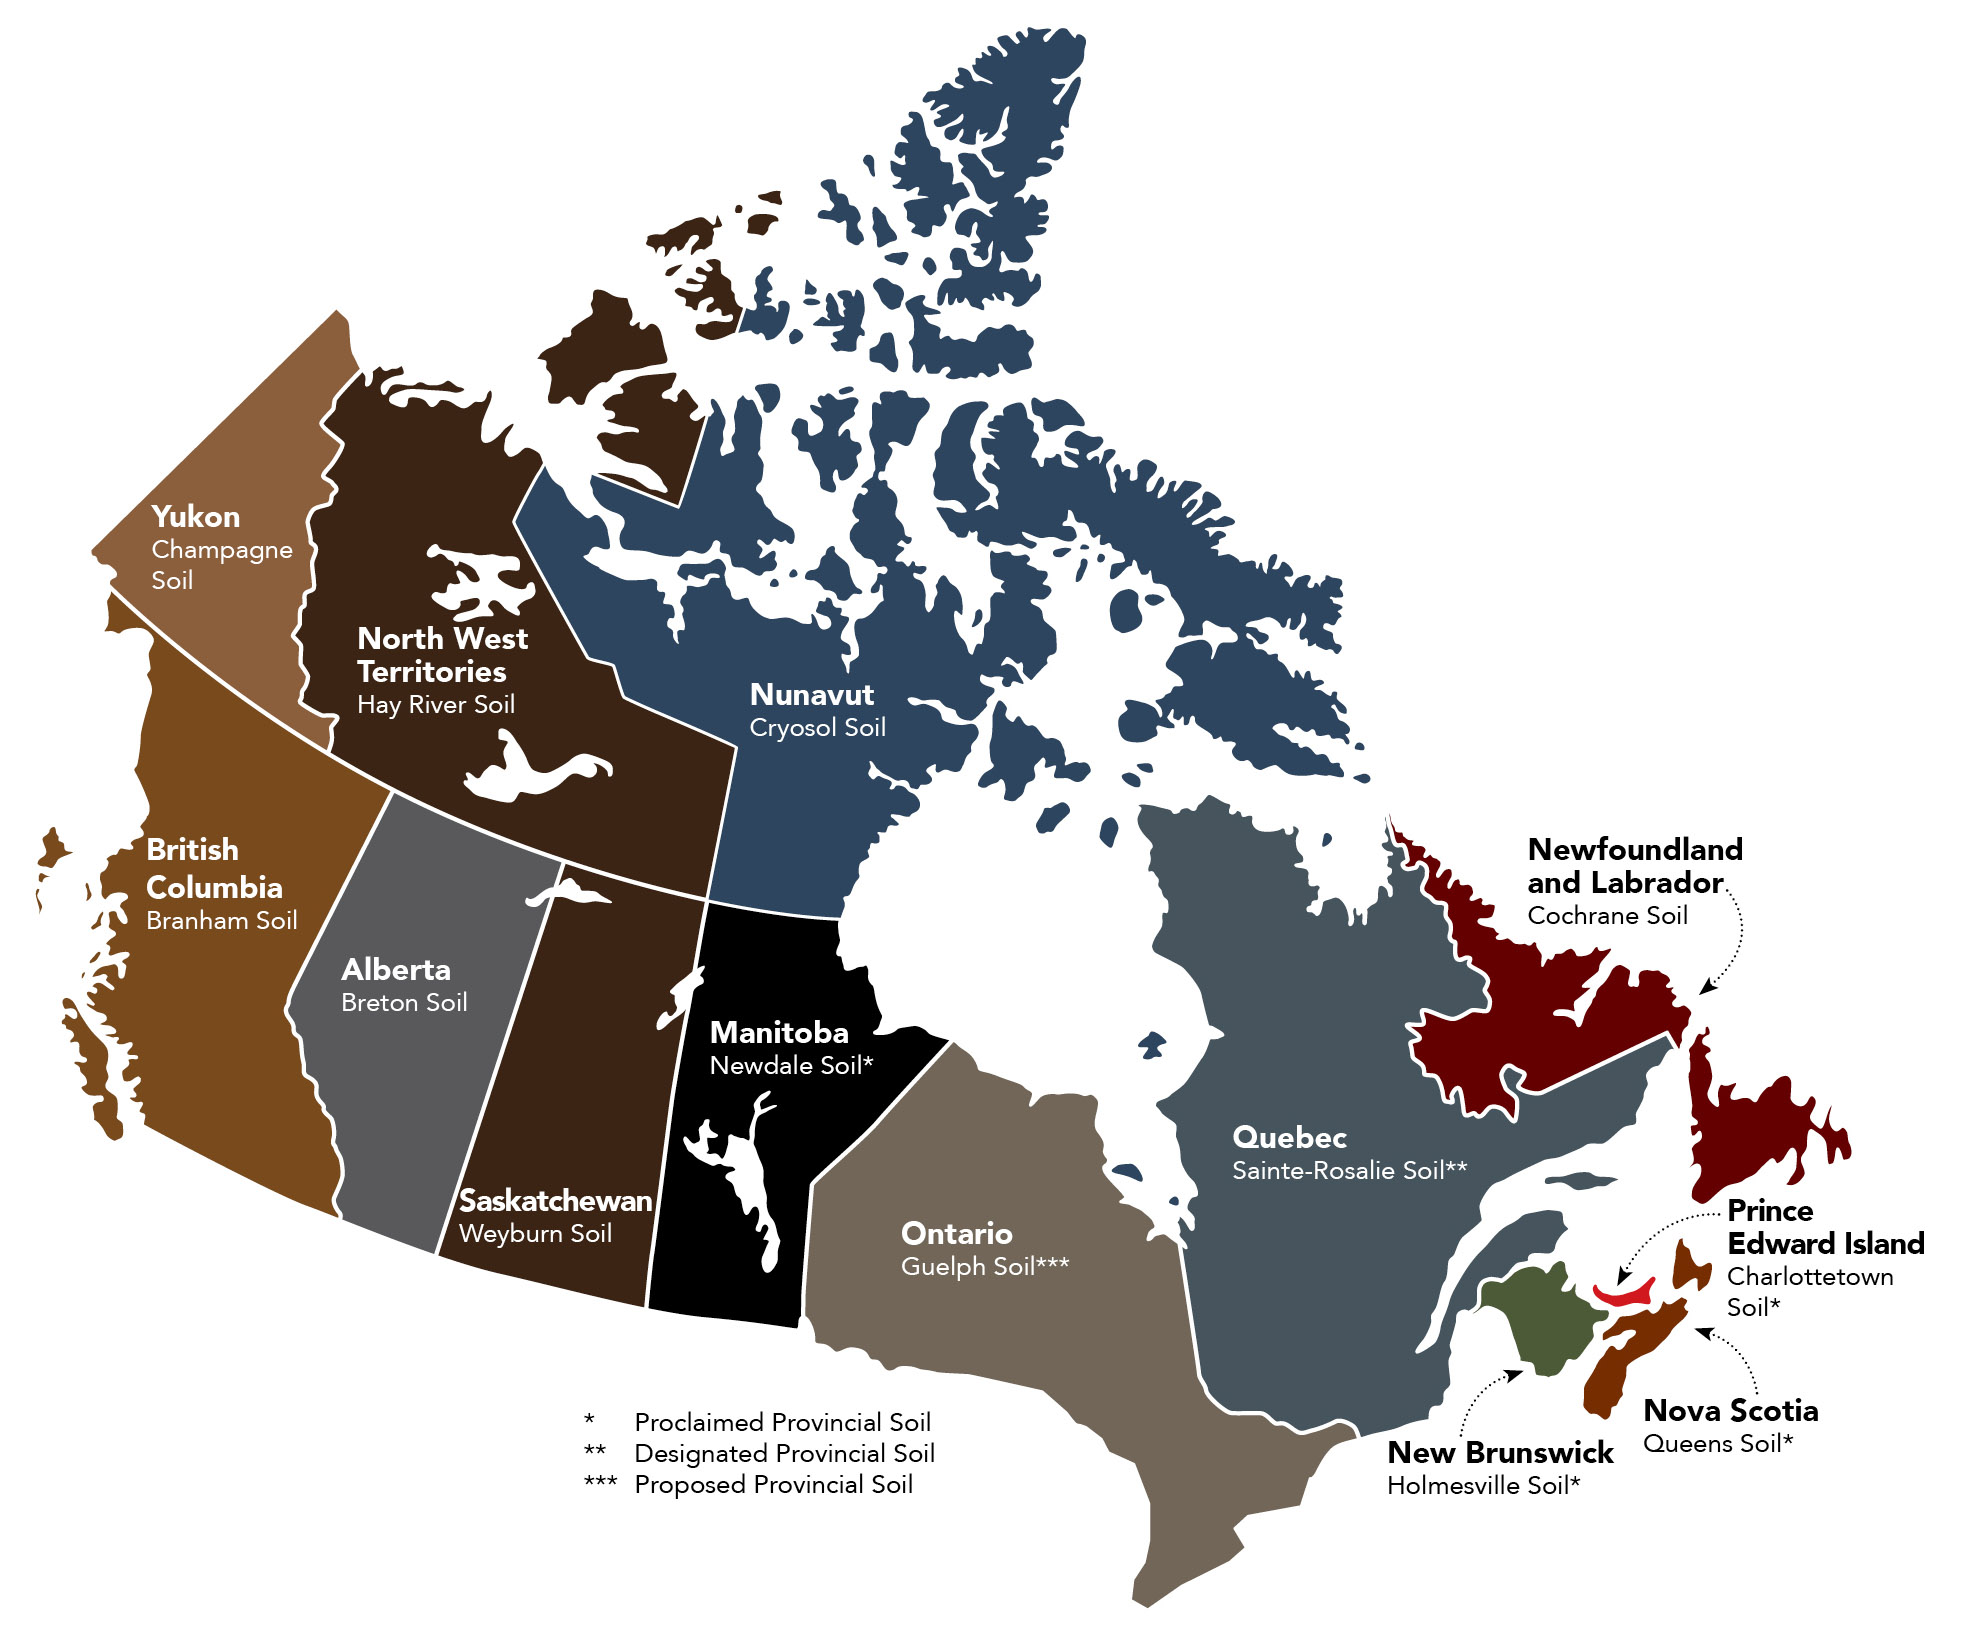 Map Of Western Canada Provinces.Our Home And Native Land Significant Agricultural Soils Across